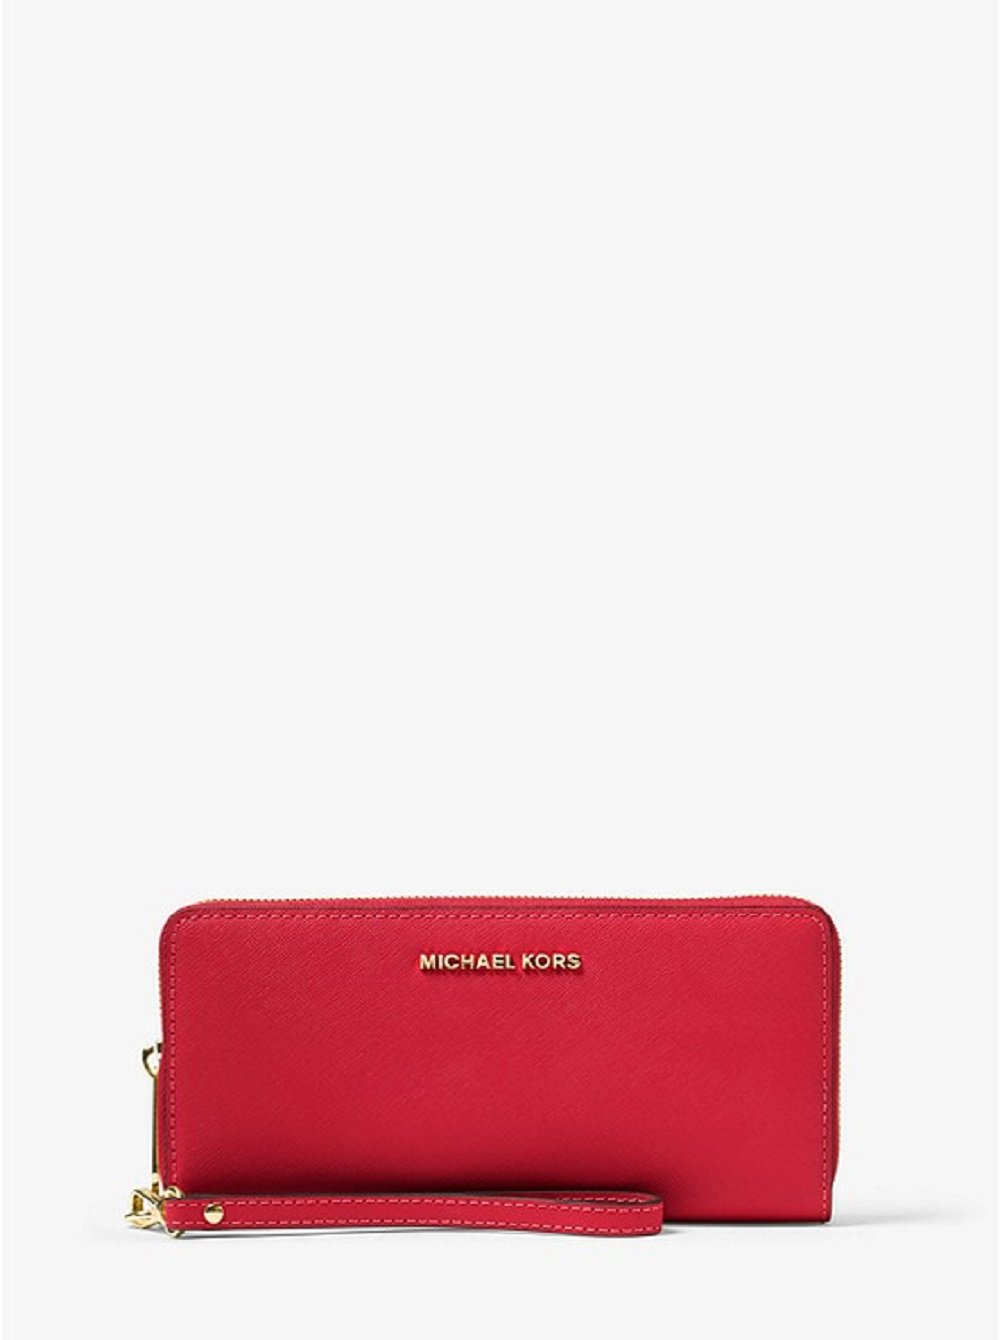 MICHAEL MICHAEL KORS Jet Set Travel Leather Continental Wristlet by Michael Kors